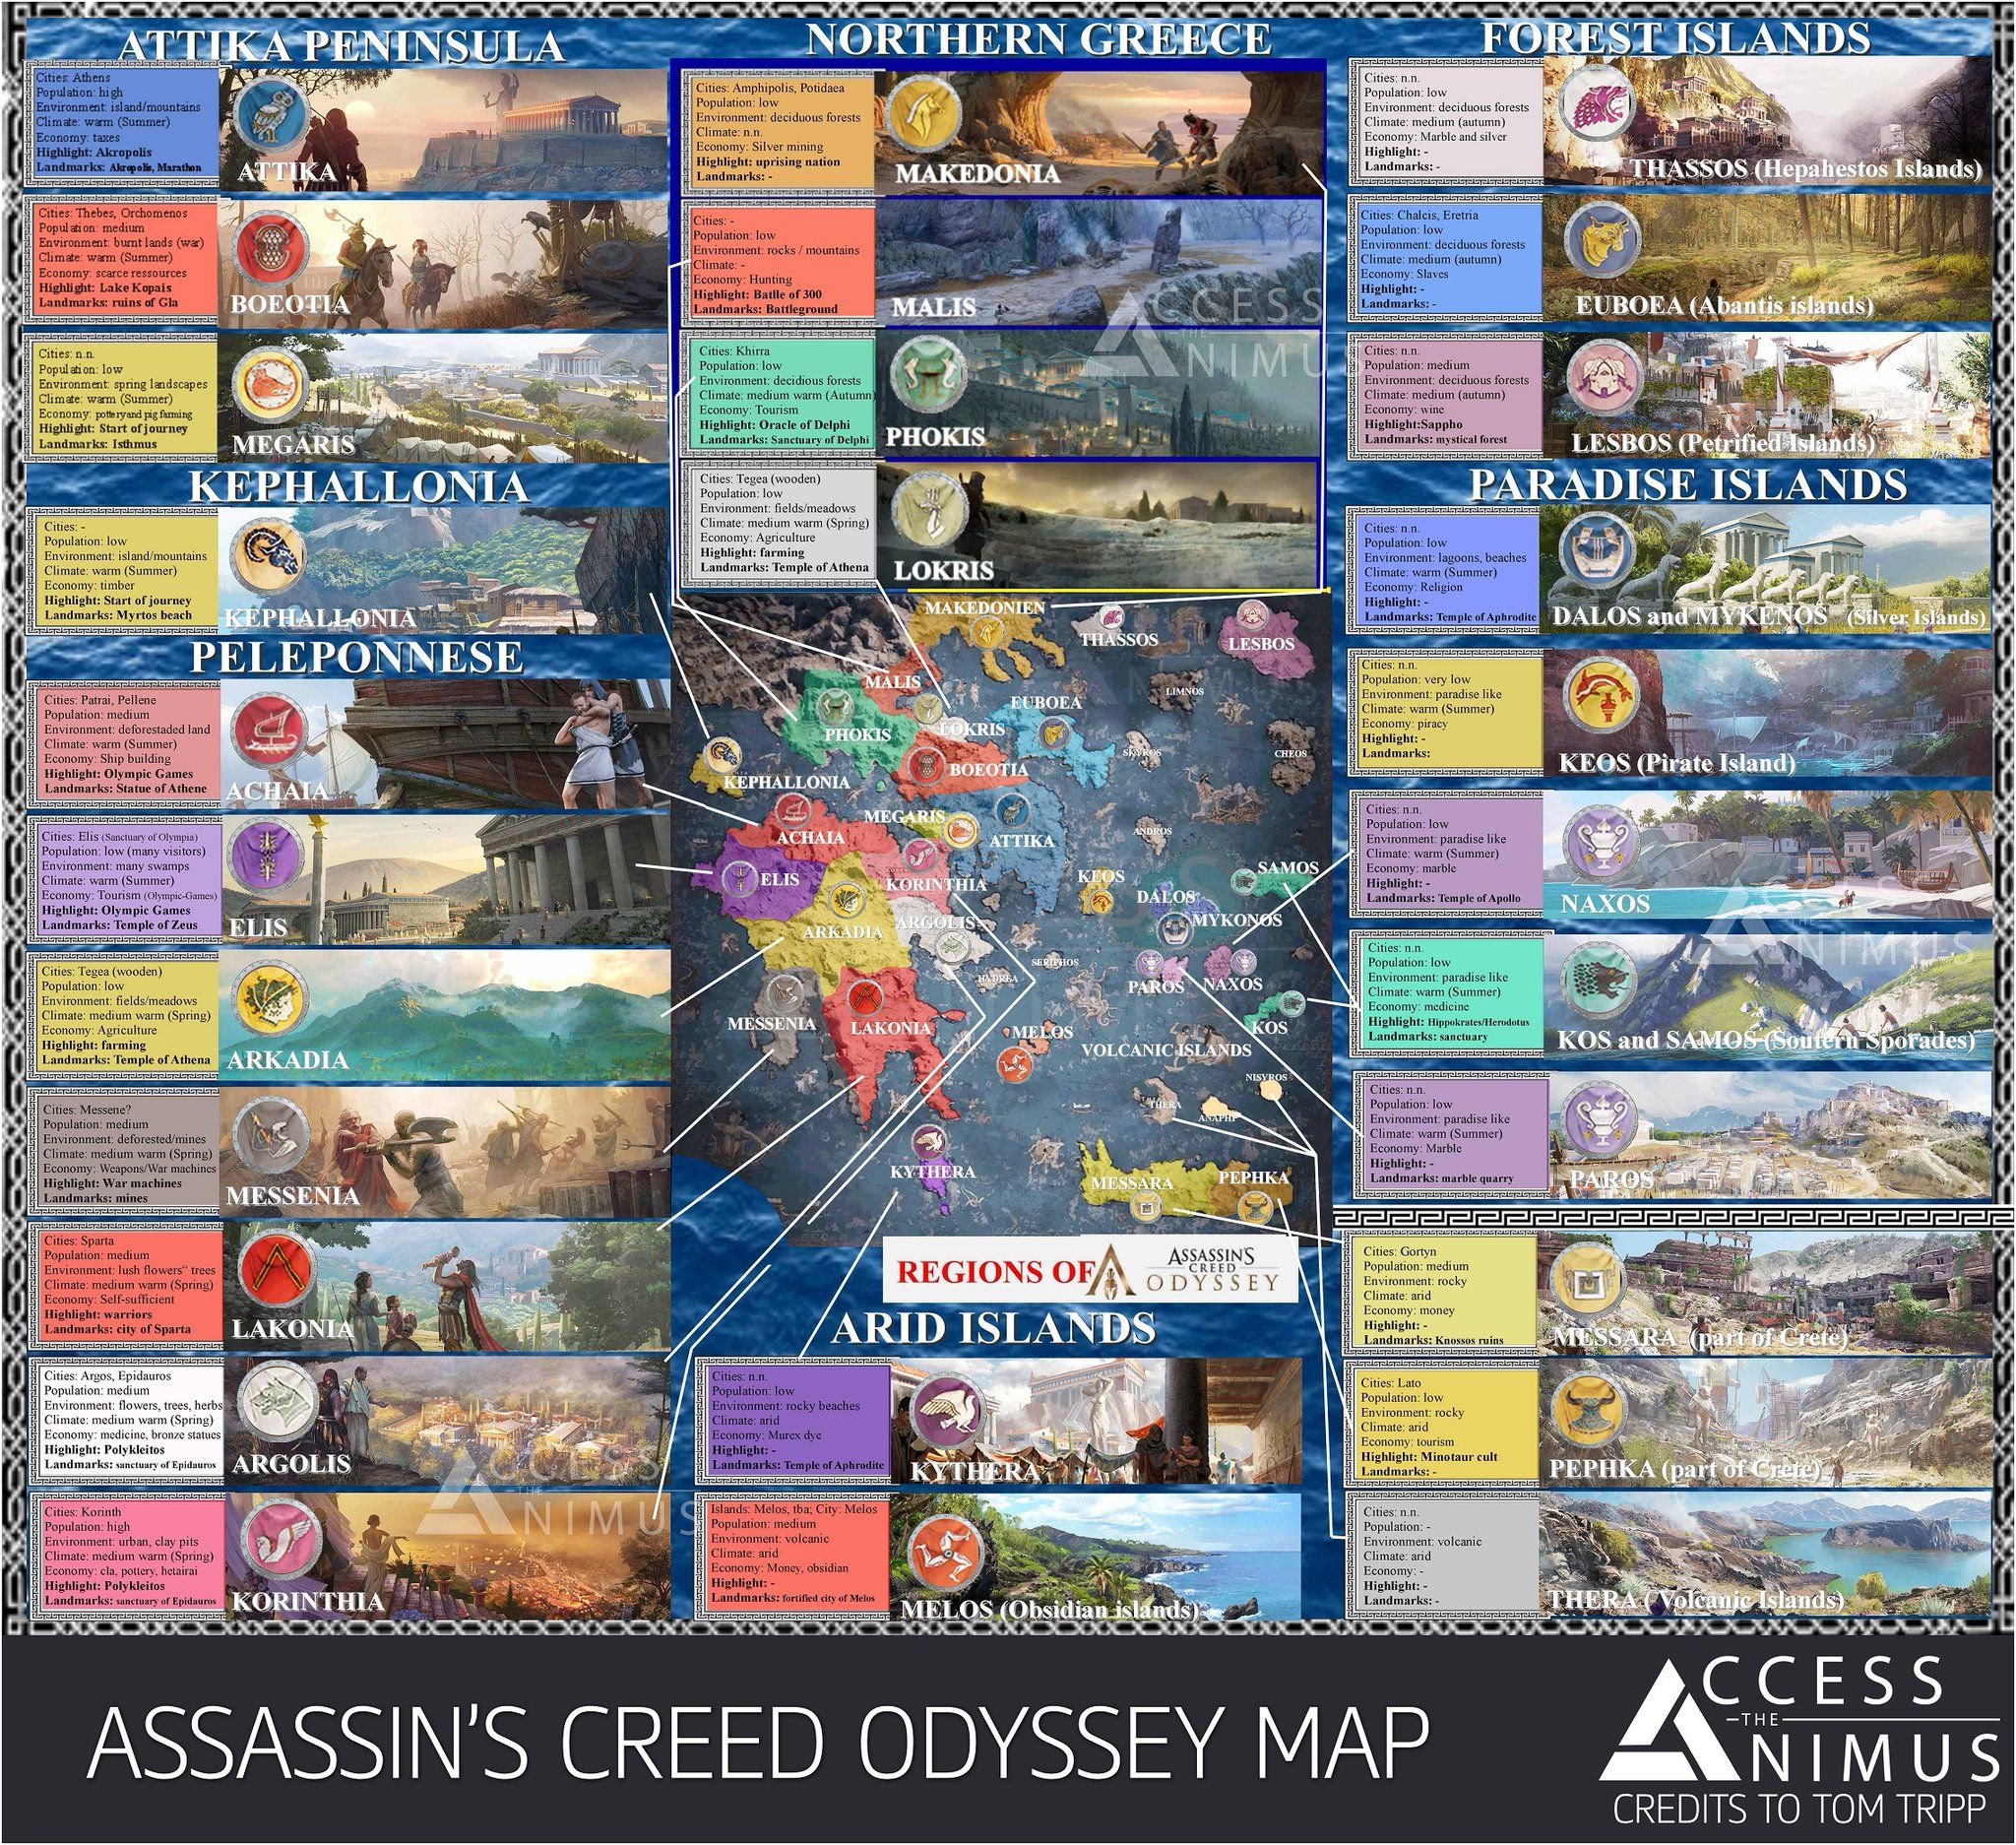 Pin by Haim Harris on Assassin's Creed Assassins creed